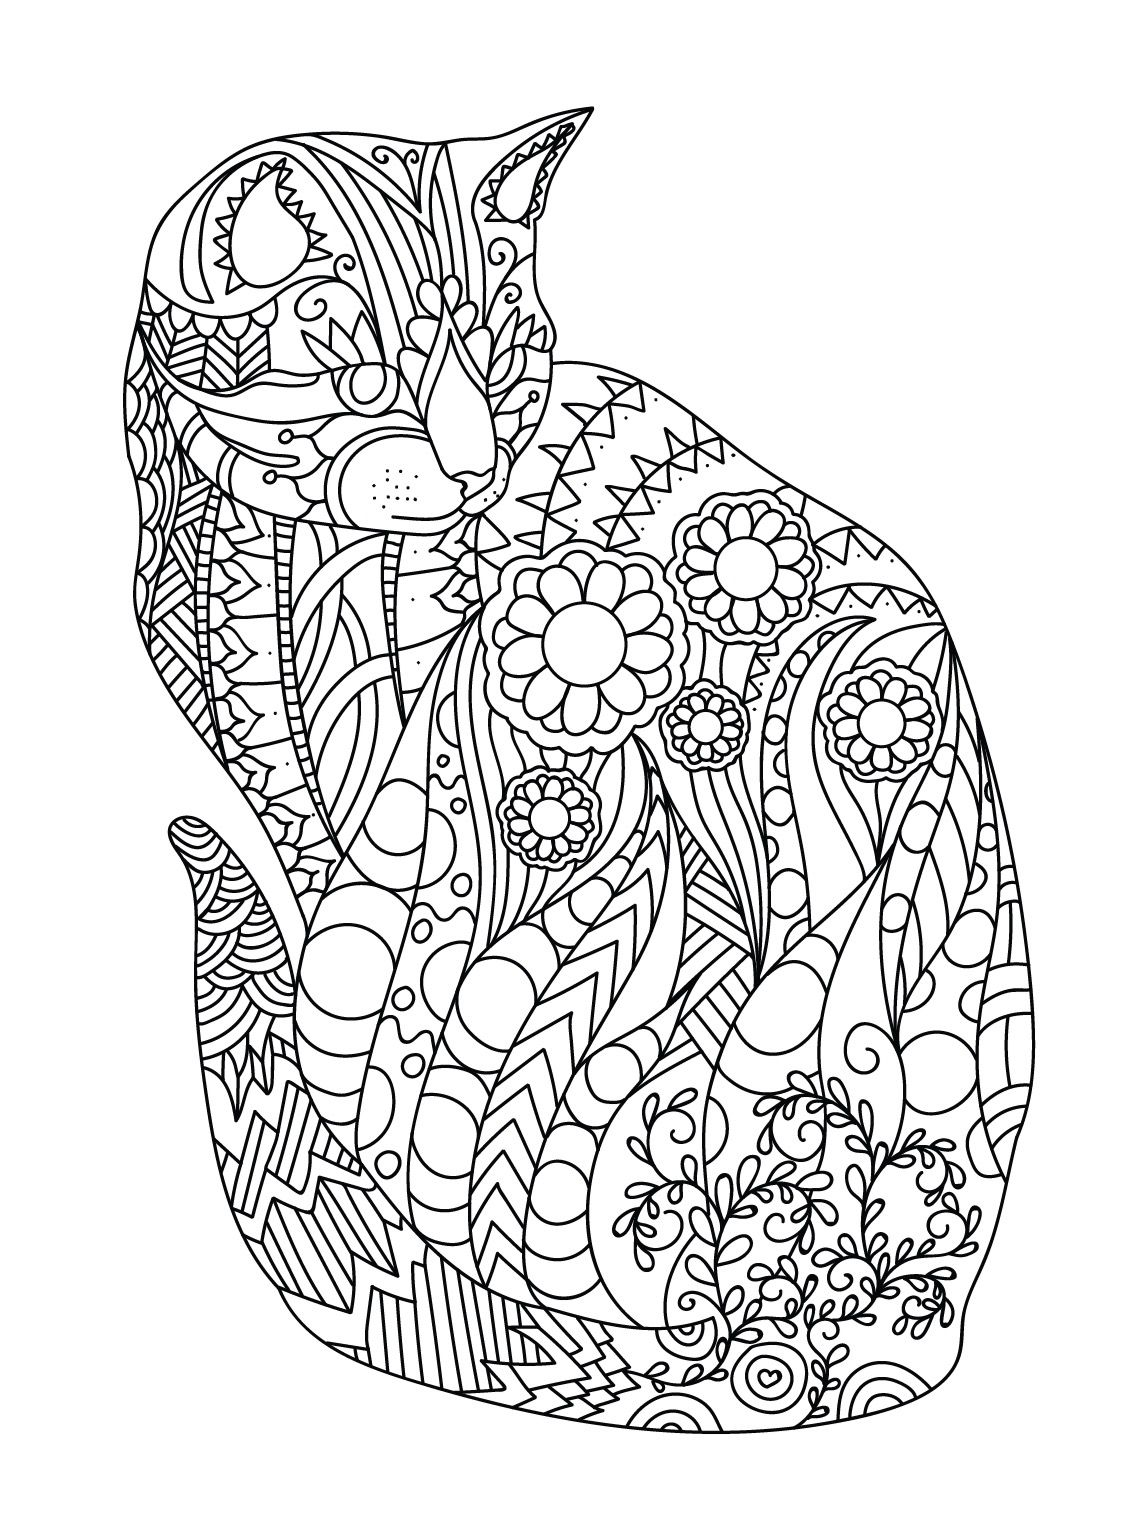 49 Zentangle Animals: Inspiration To Get Started Tangling In 2020 · Craftwhack – Zentangle Animals